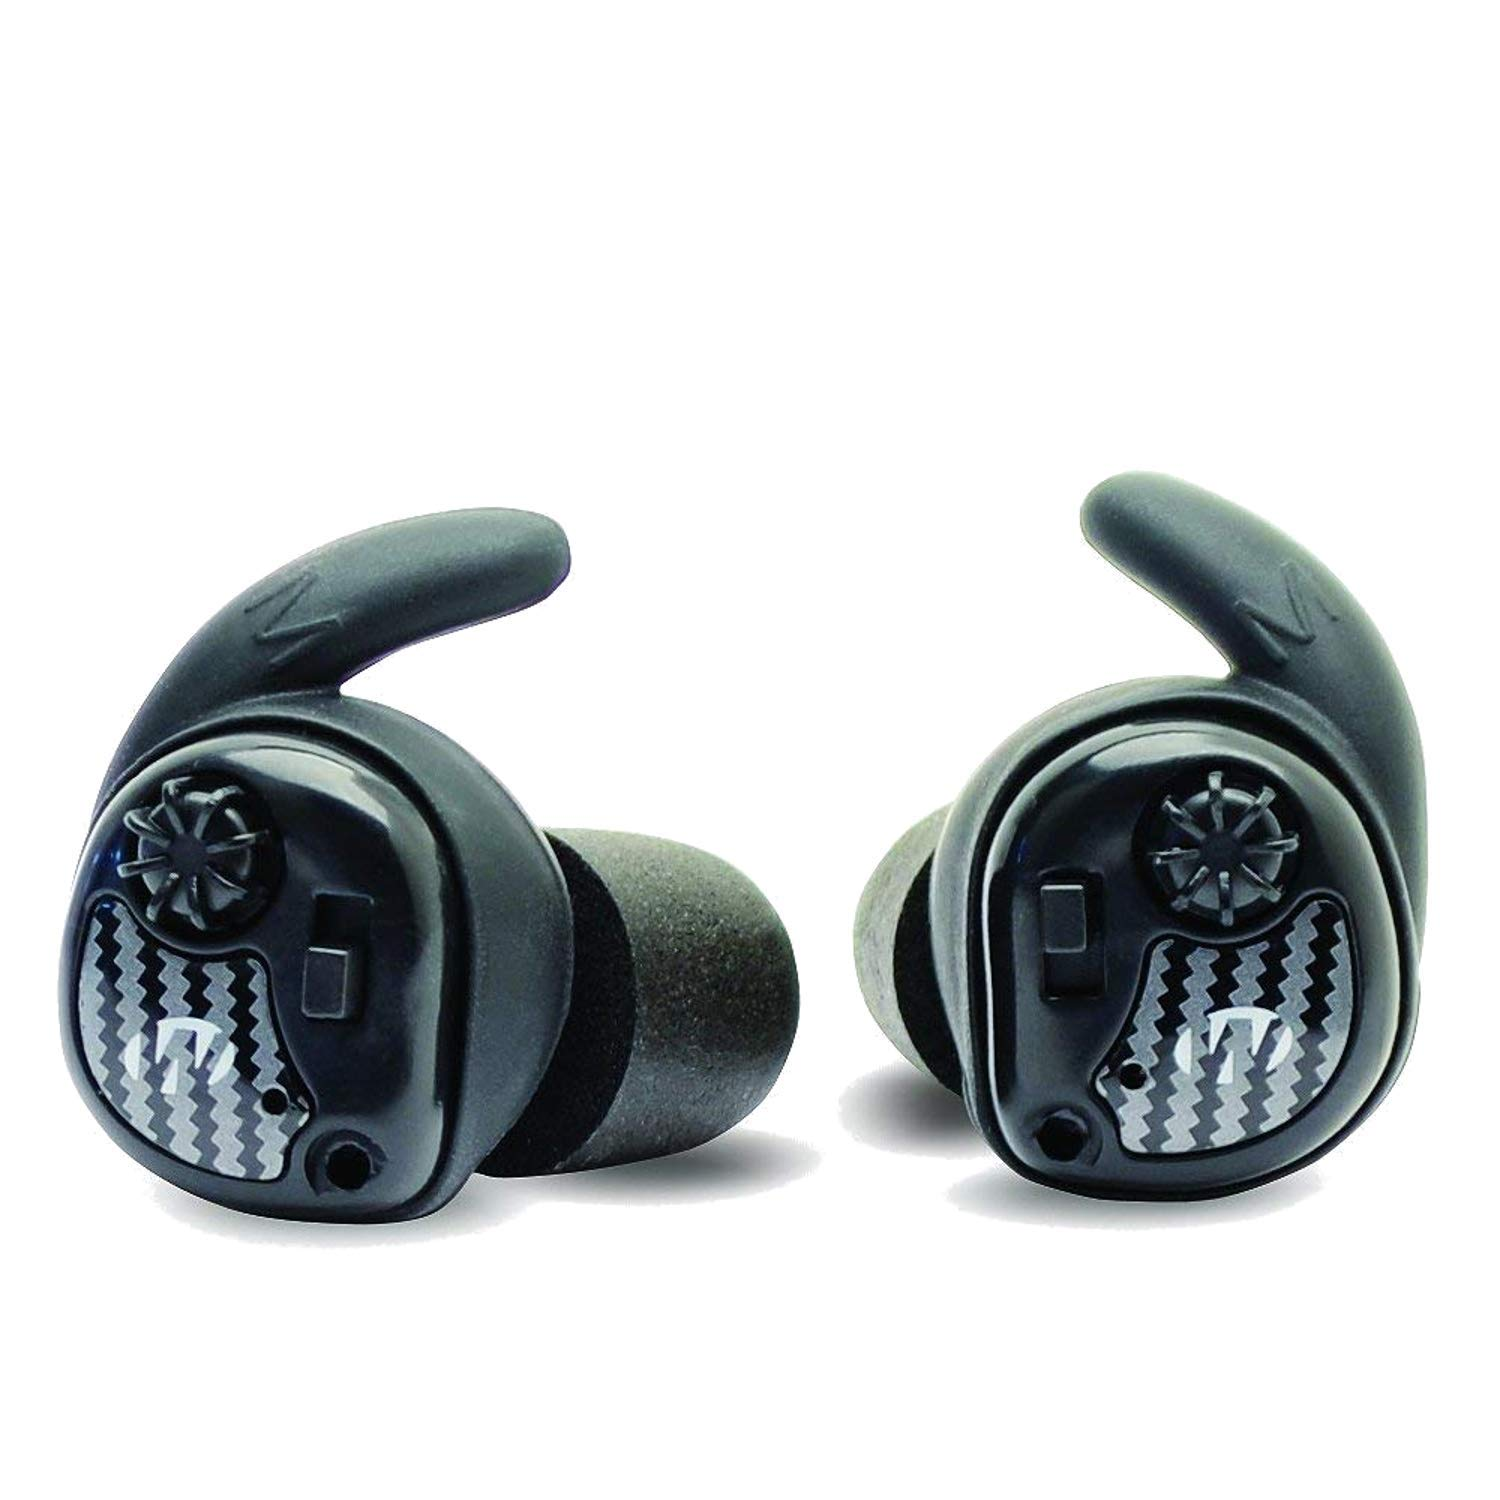 Walker's Silencer Digital Earbuds, Sound Activated Compression, NRR25dB, Dynamic Wind Reduction by Walker's Game Ear